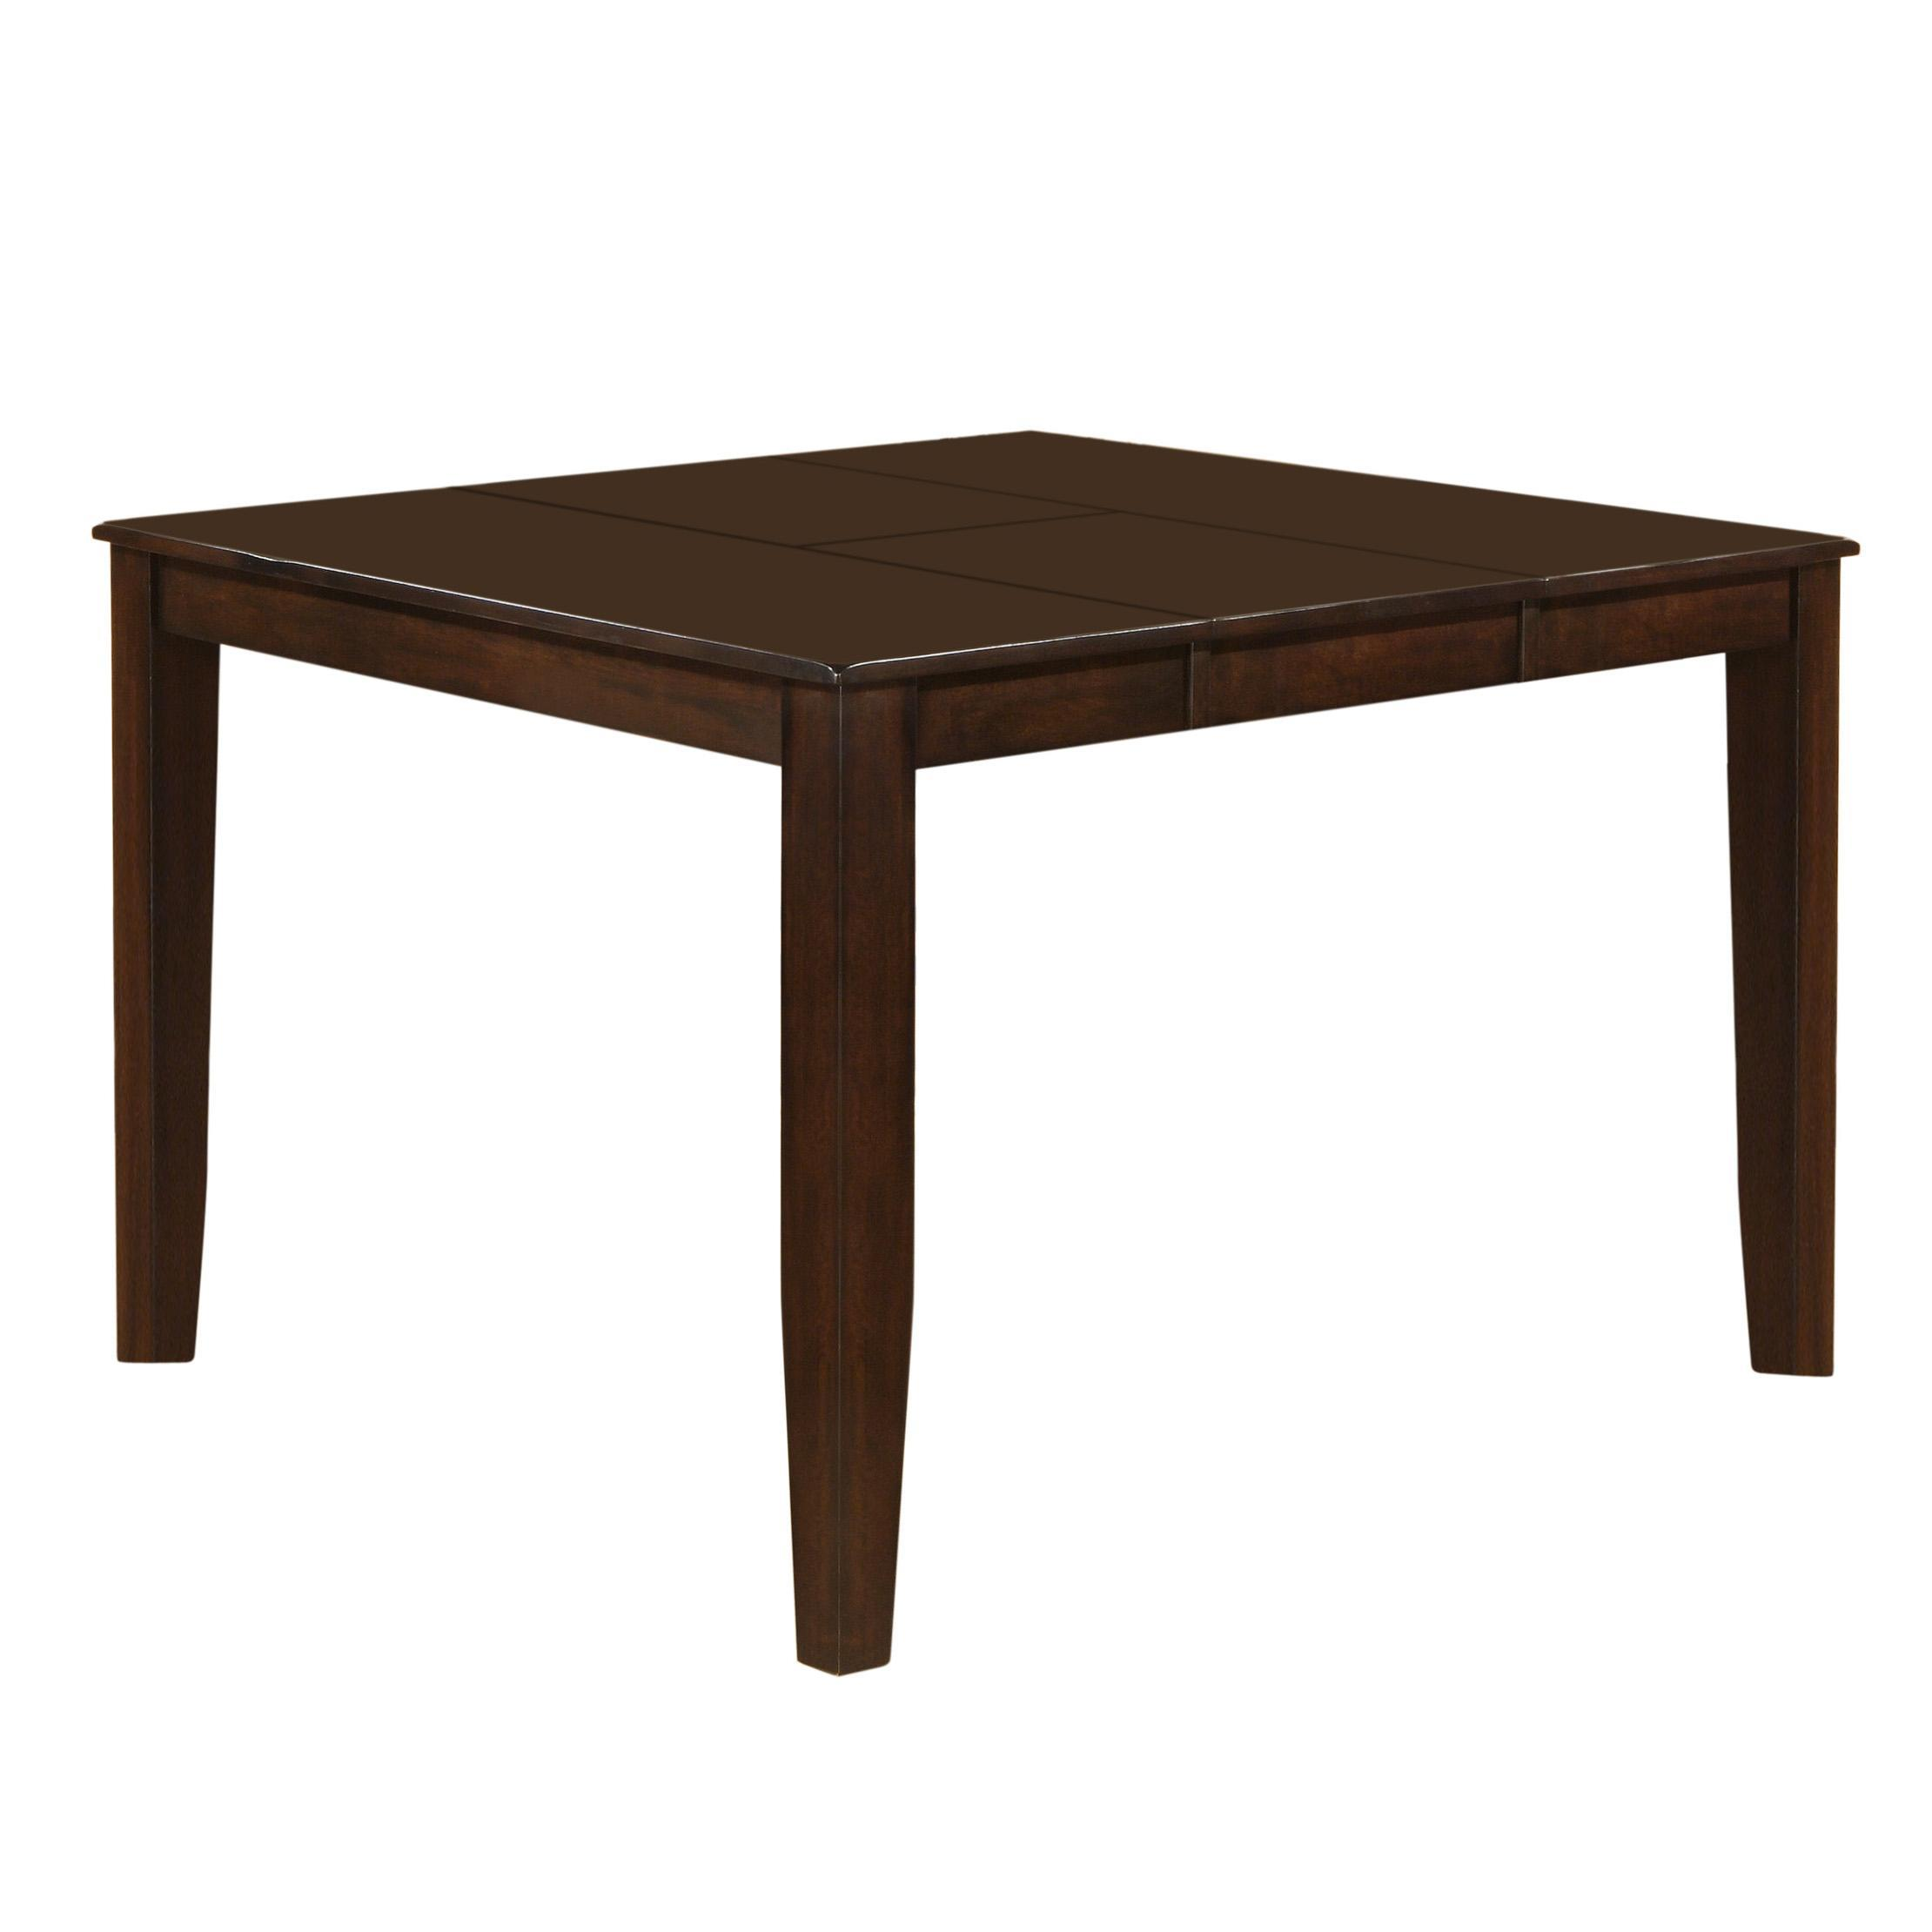 Melbourne pub table morris home pub tables Morris home furniture outlet